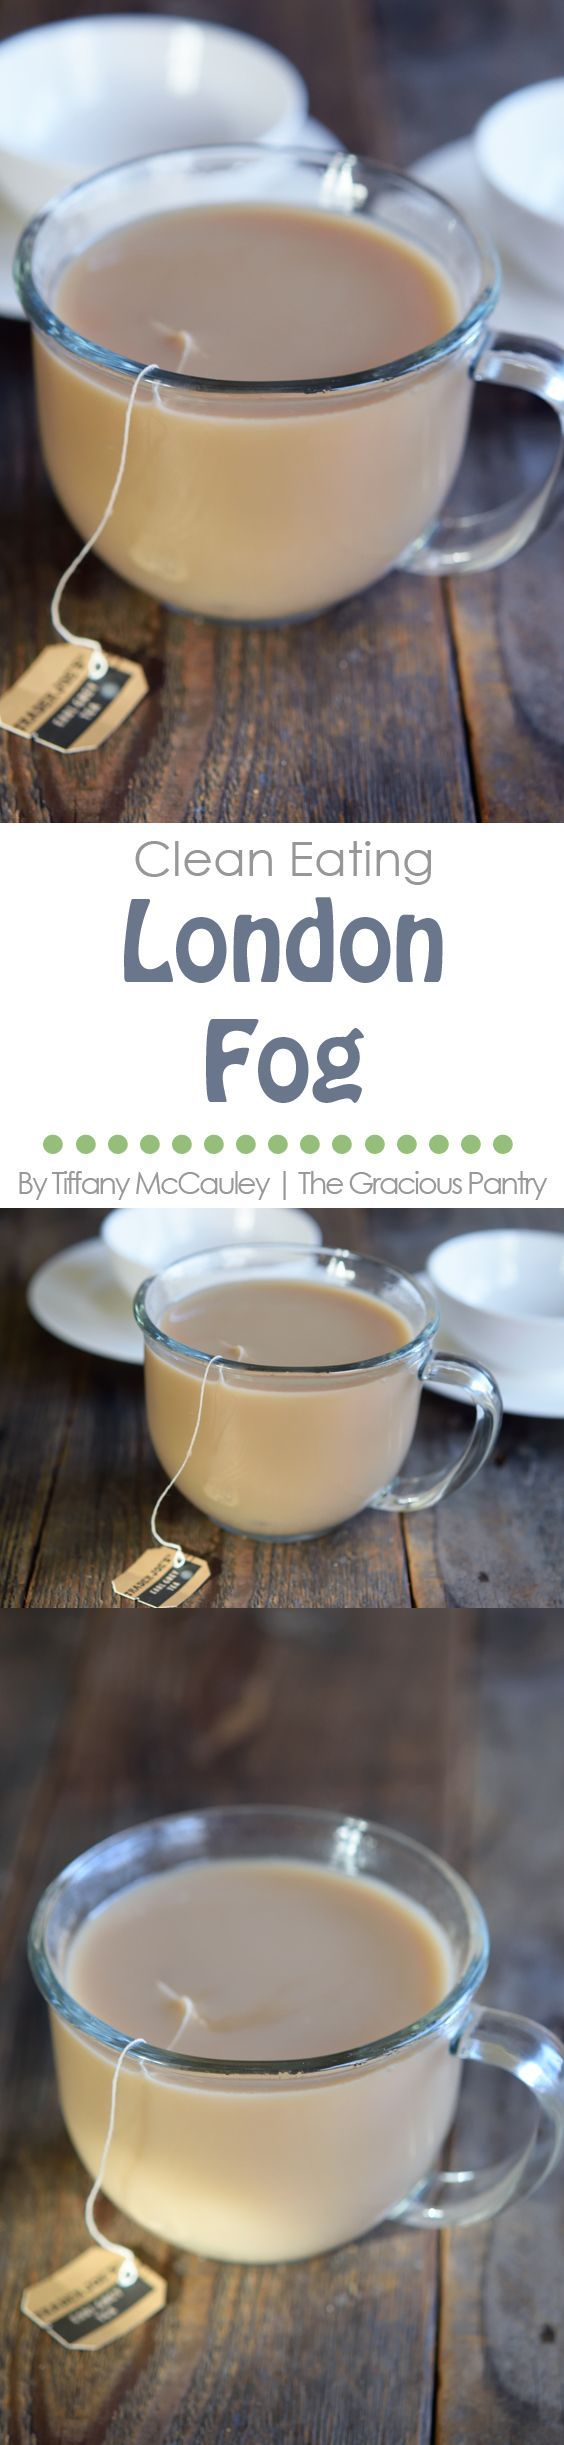 Clean Eating Recipes | London Fog Recipe | Tea Recipes | Healthy Recipes